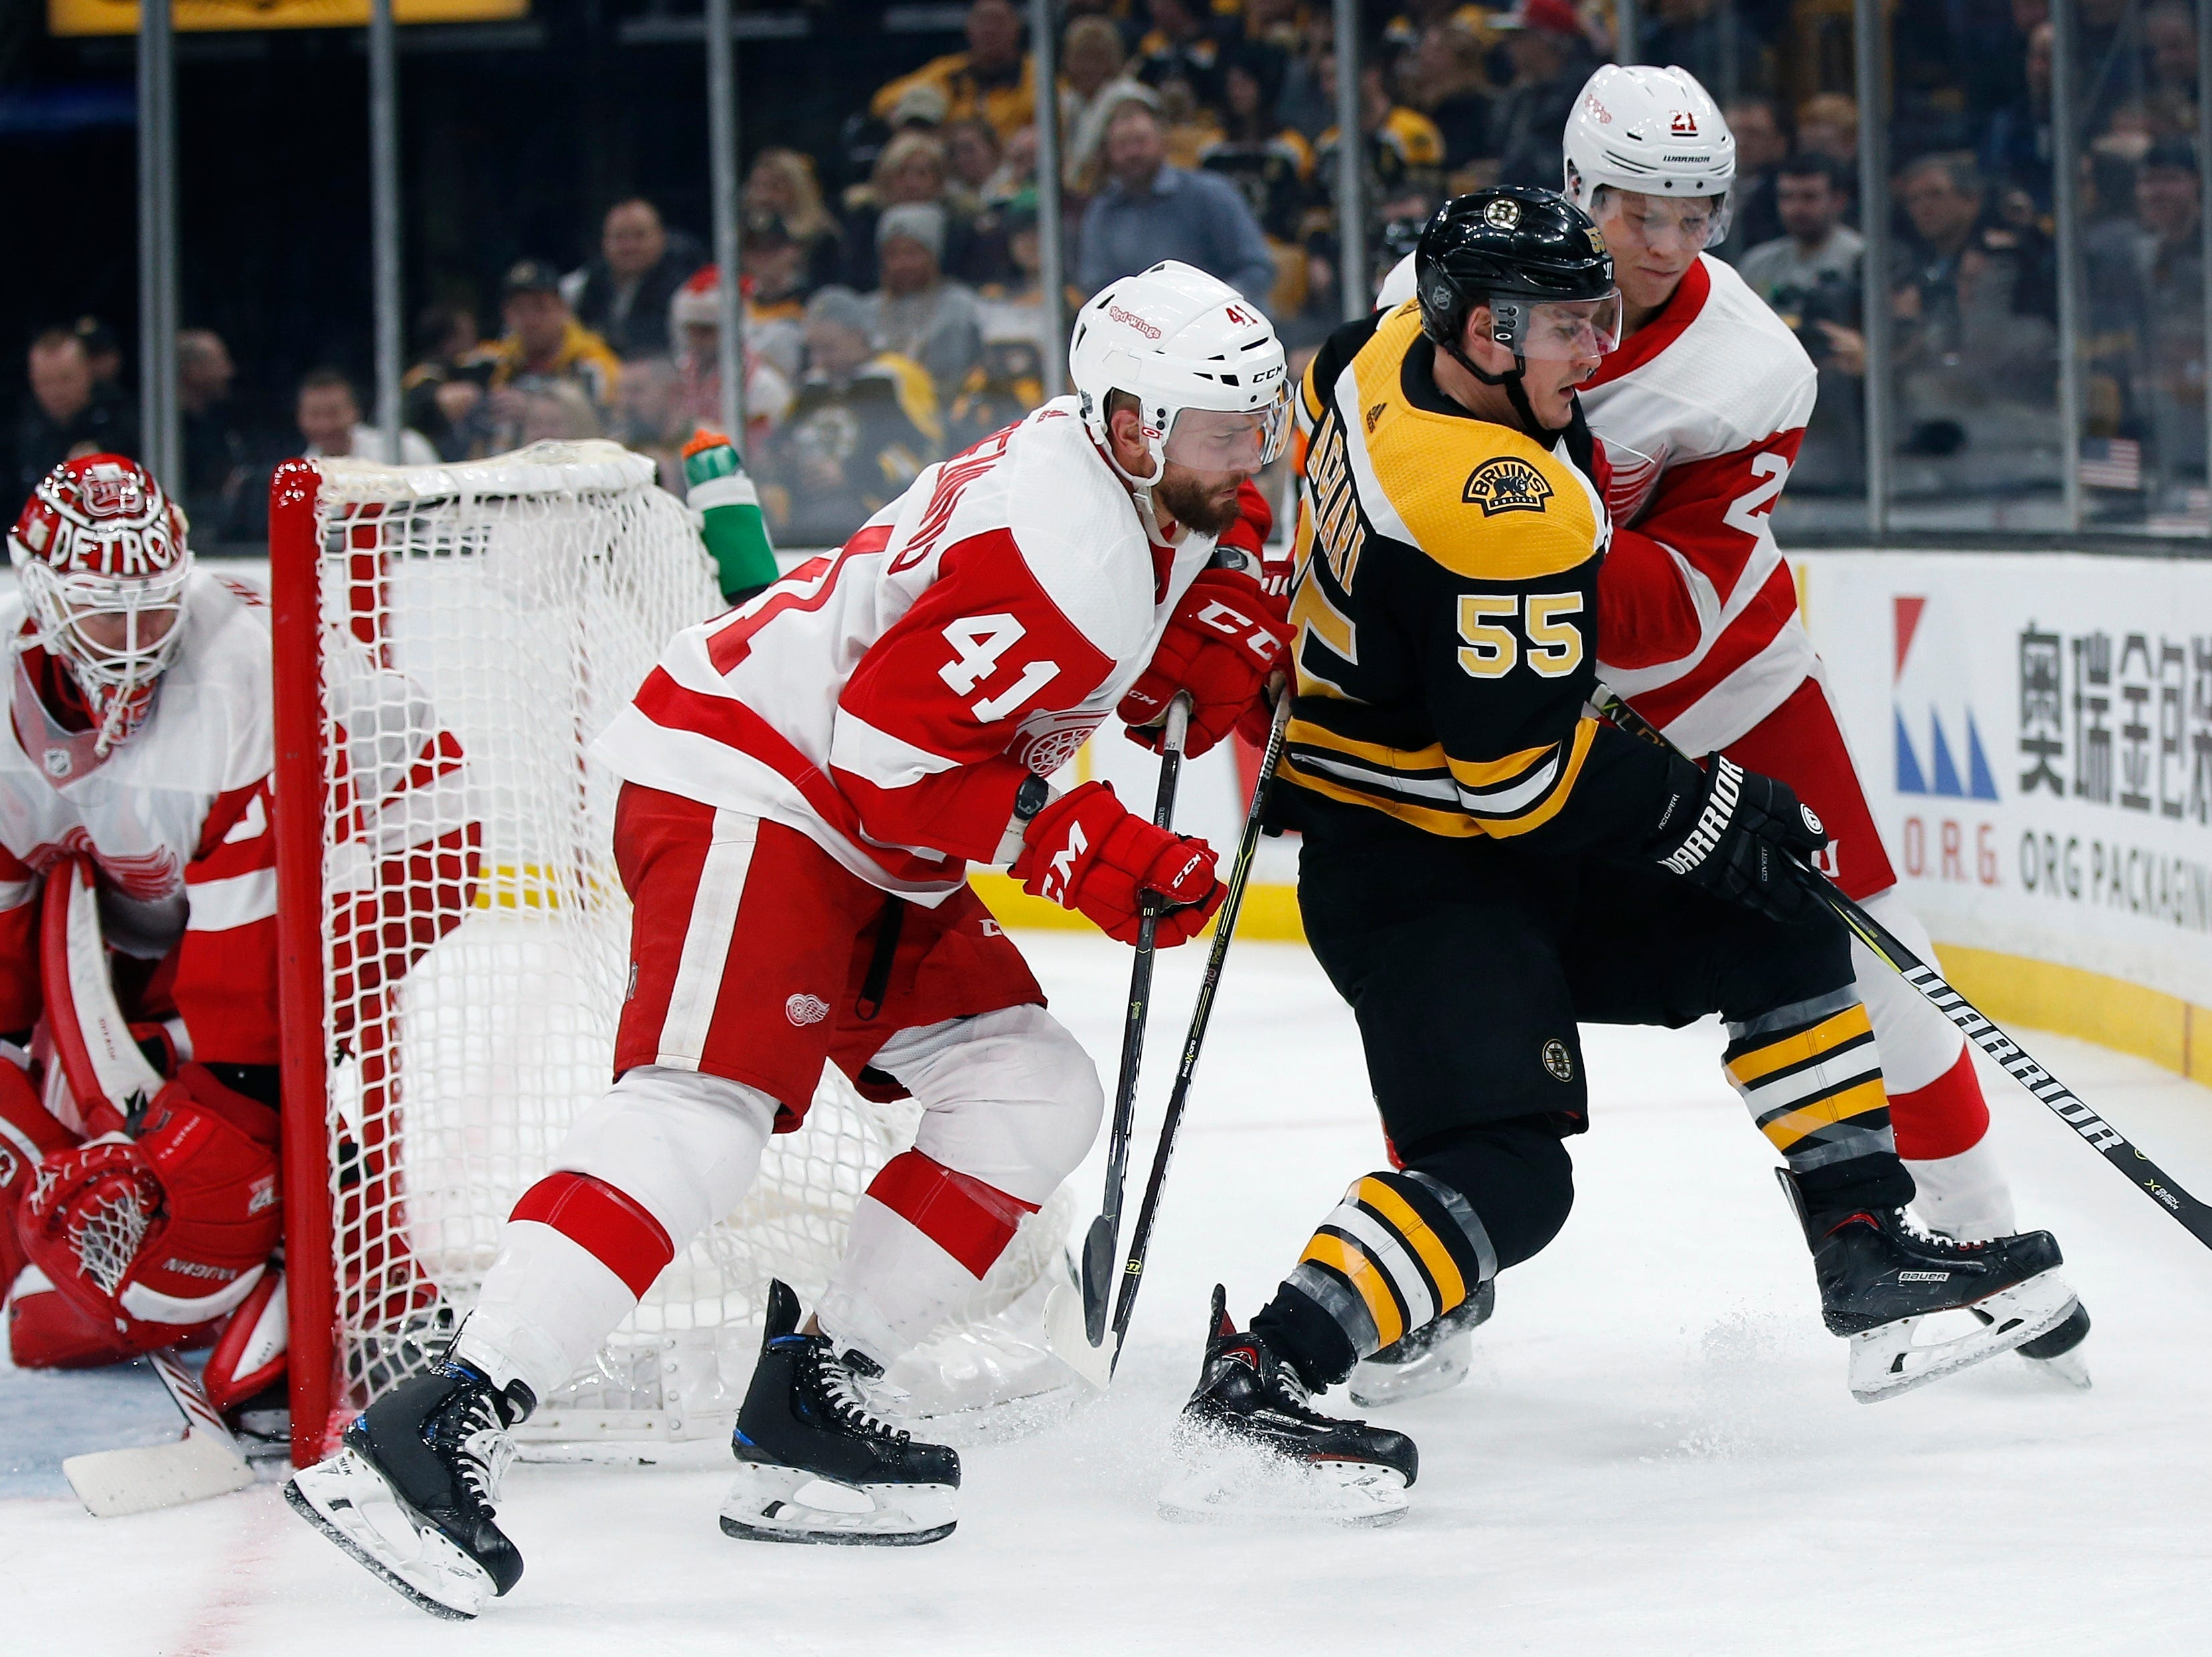 Boston Bruins' Noel Acciari (55) battles Detroit Red Wings' Luke Glendening (41) and Dennis Cholowski (21) for the puck during the second period.